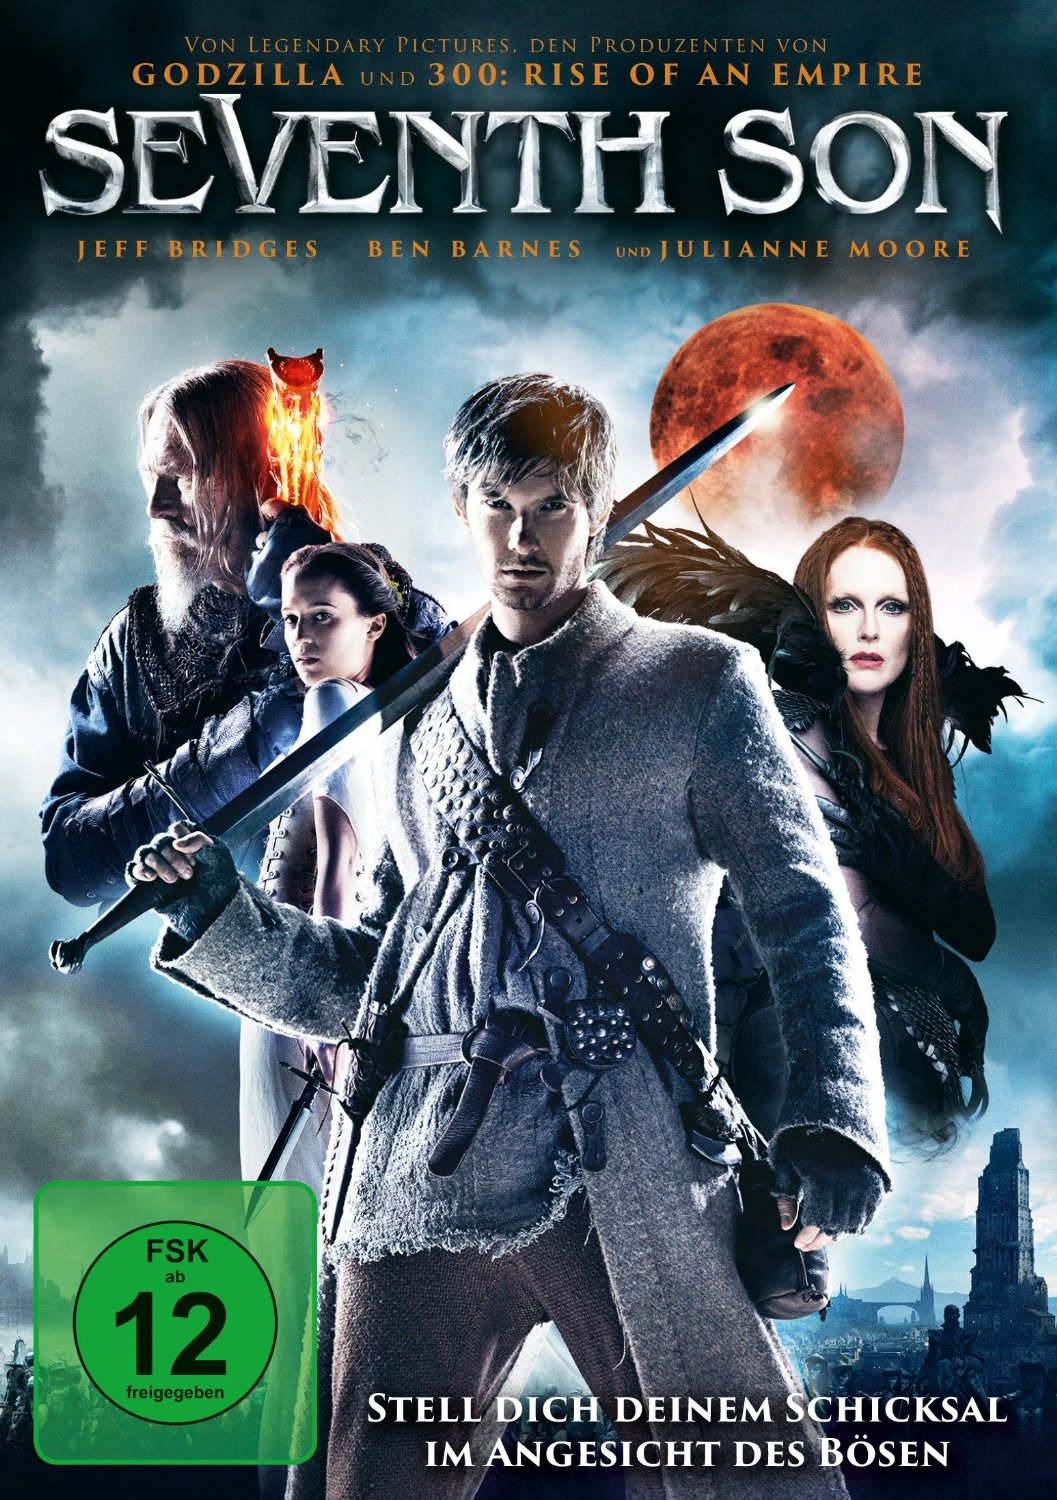 DVD-Cover von Seventh Son